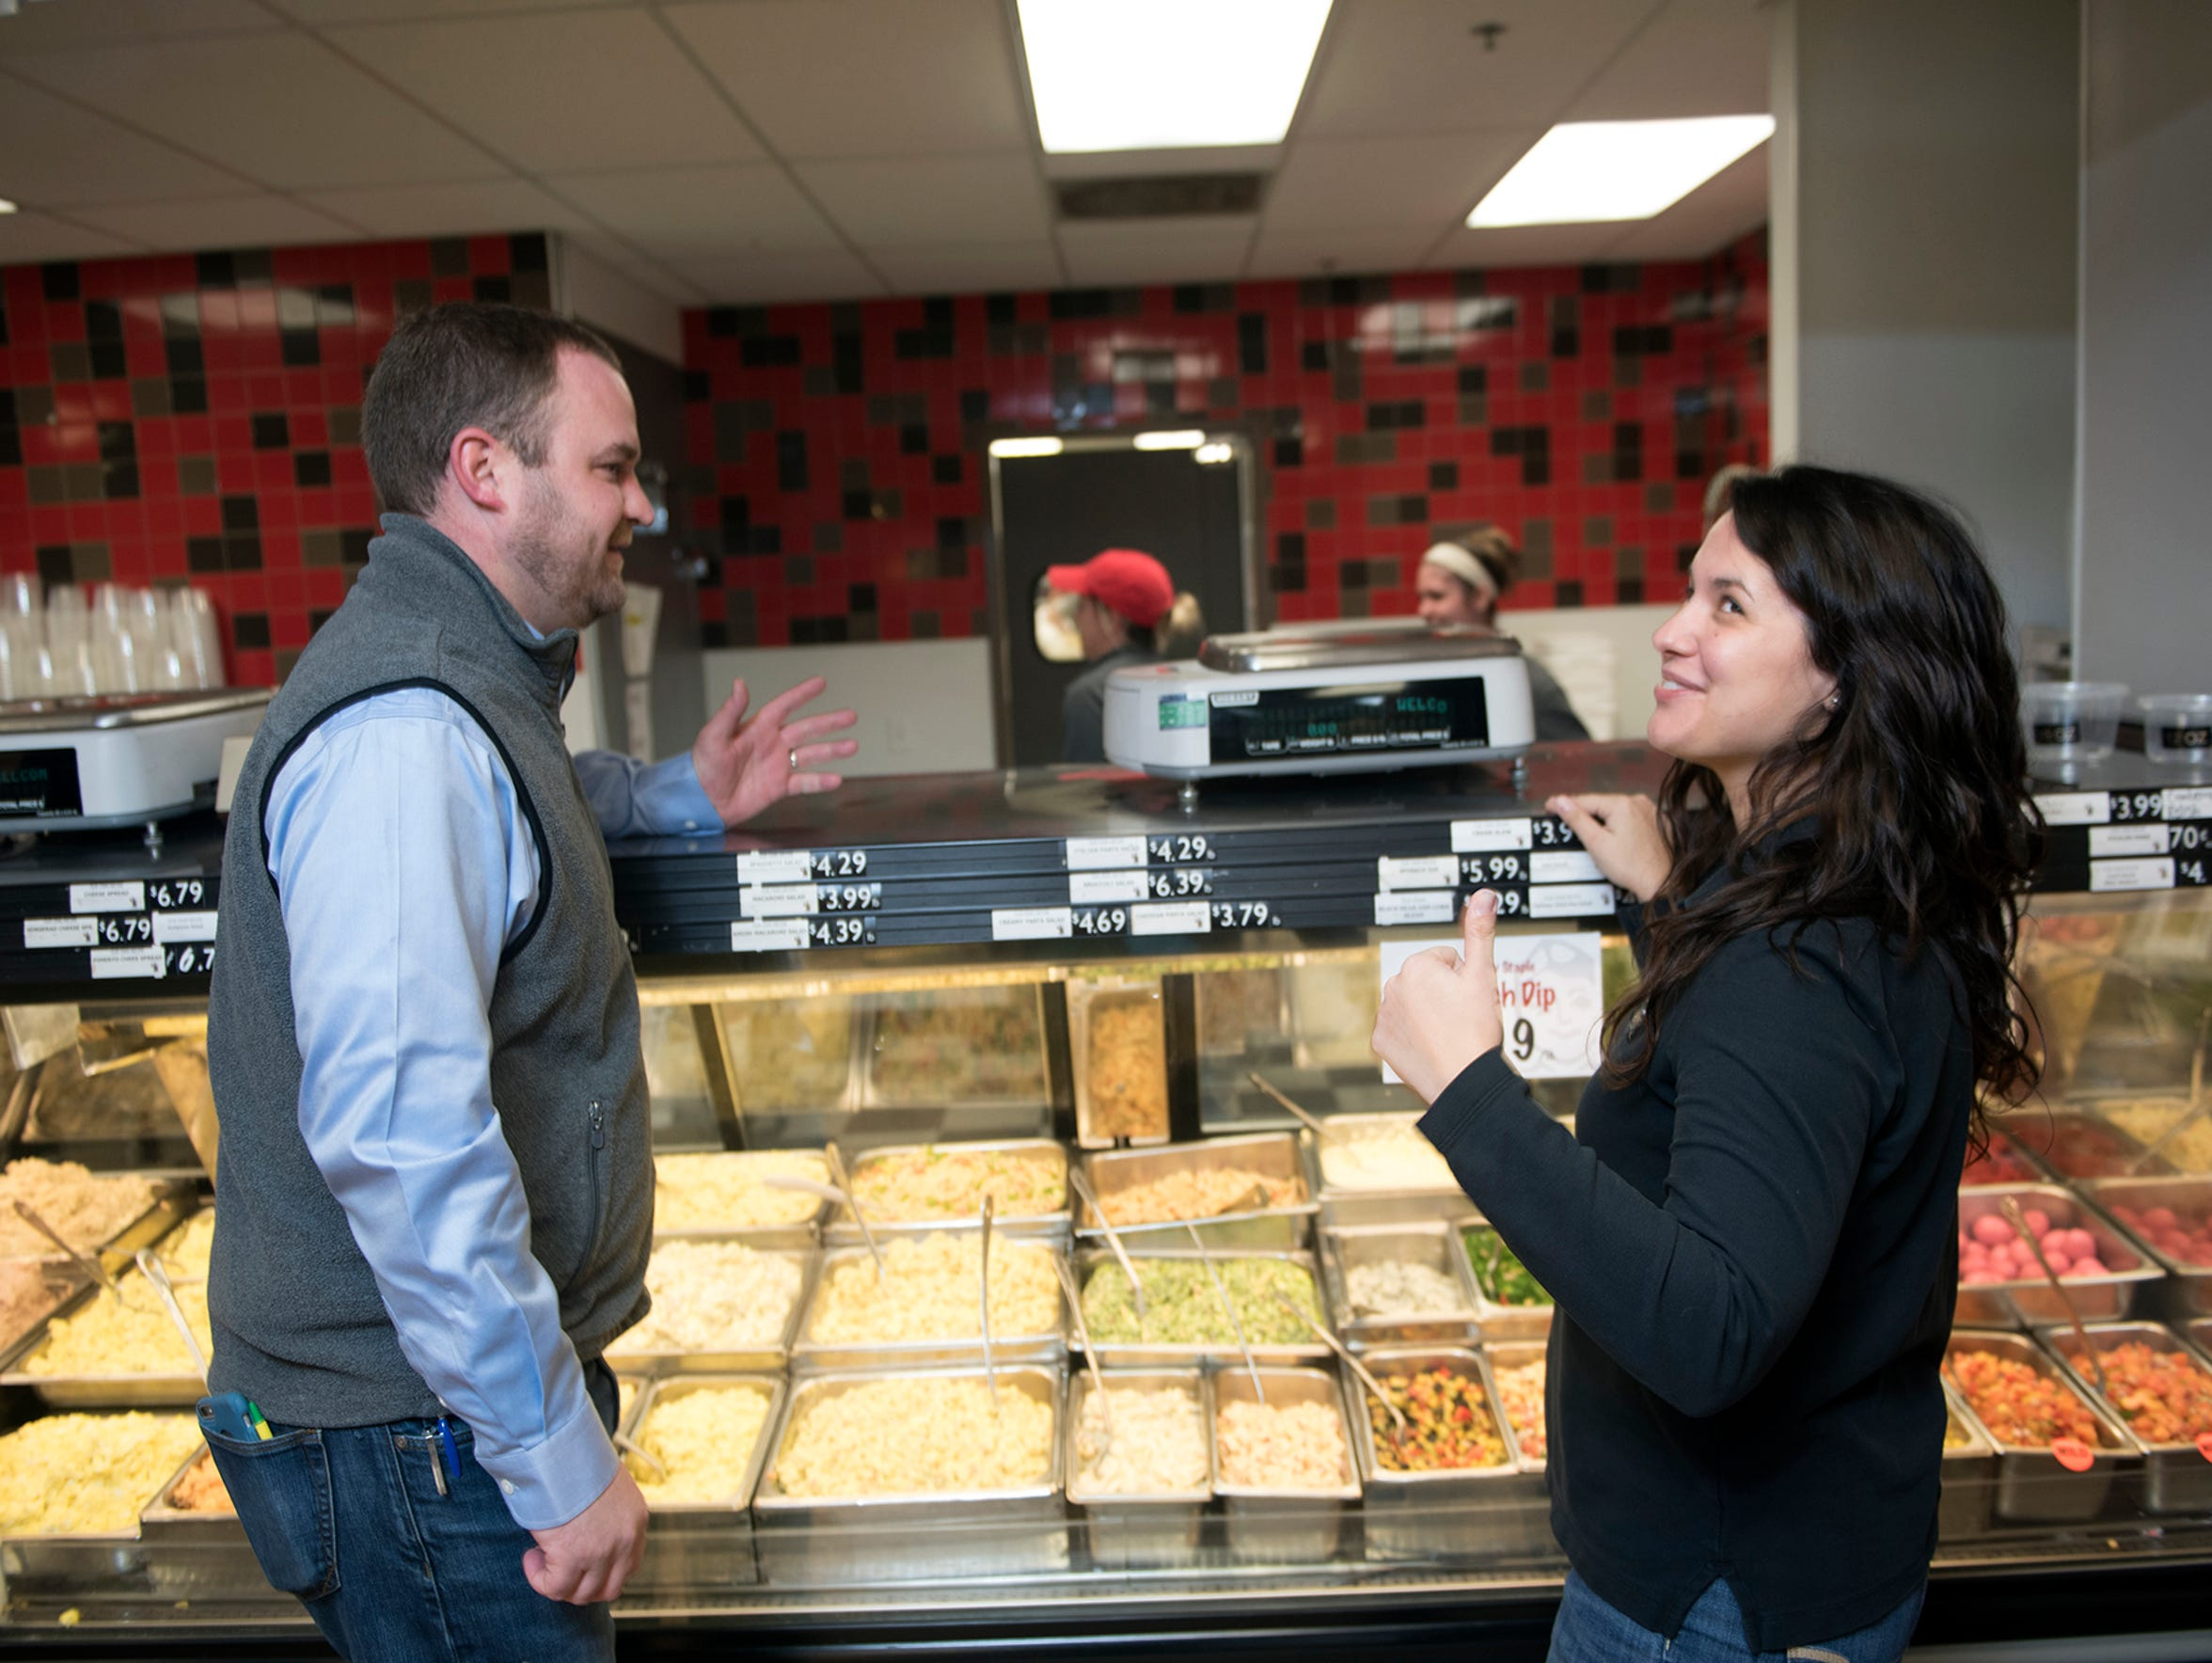 Leo and Anne Schoenhofen, owners The Butcher Shoppe, chat in front of a display of various side dishes at the local grocery, 410 Stouffer Ave., Chambersburg, on Tuesday, Jan. 30.